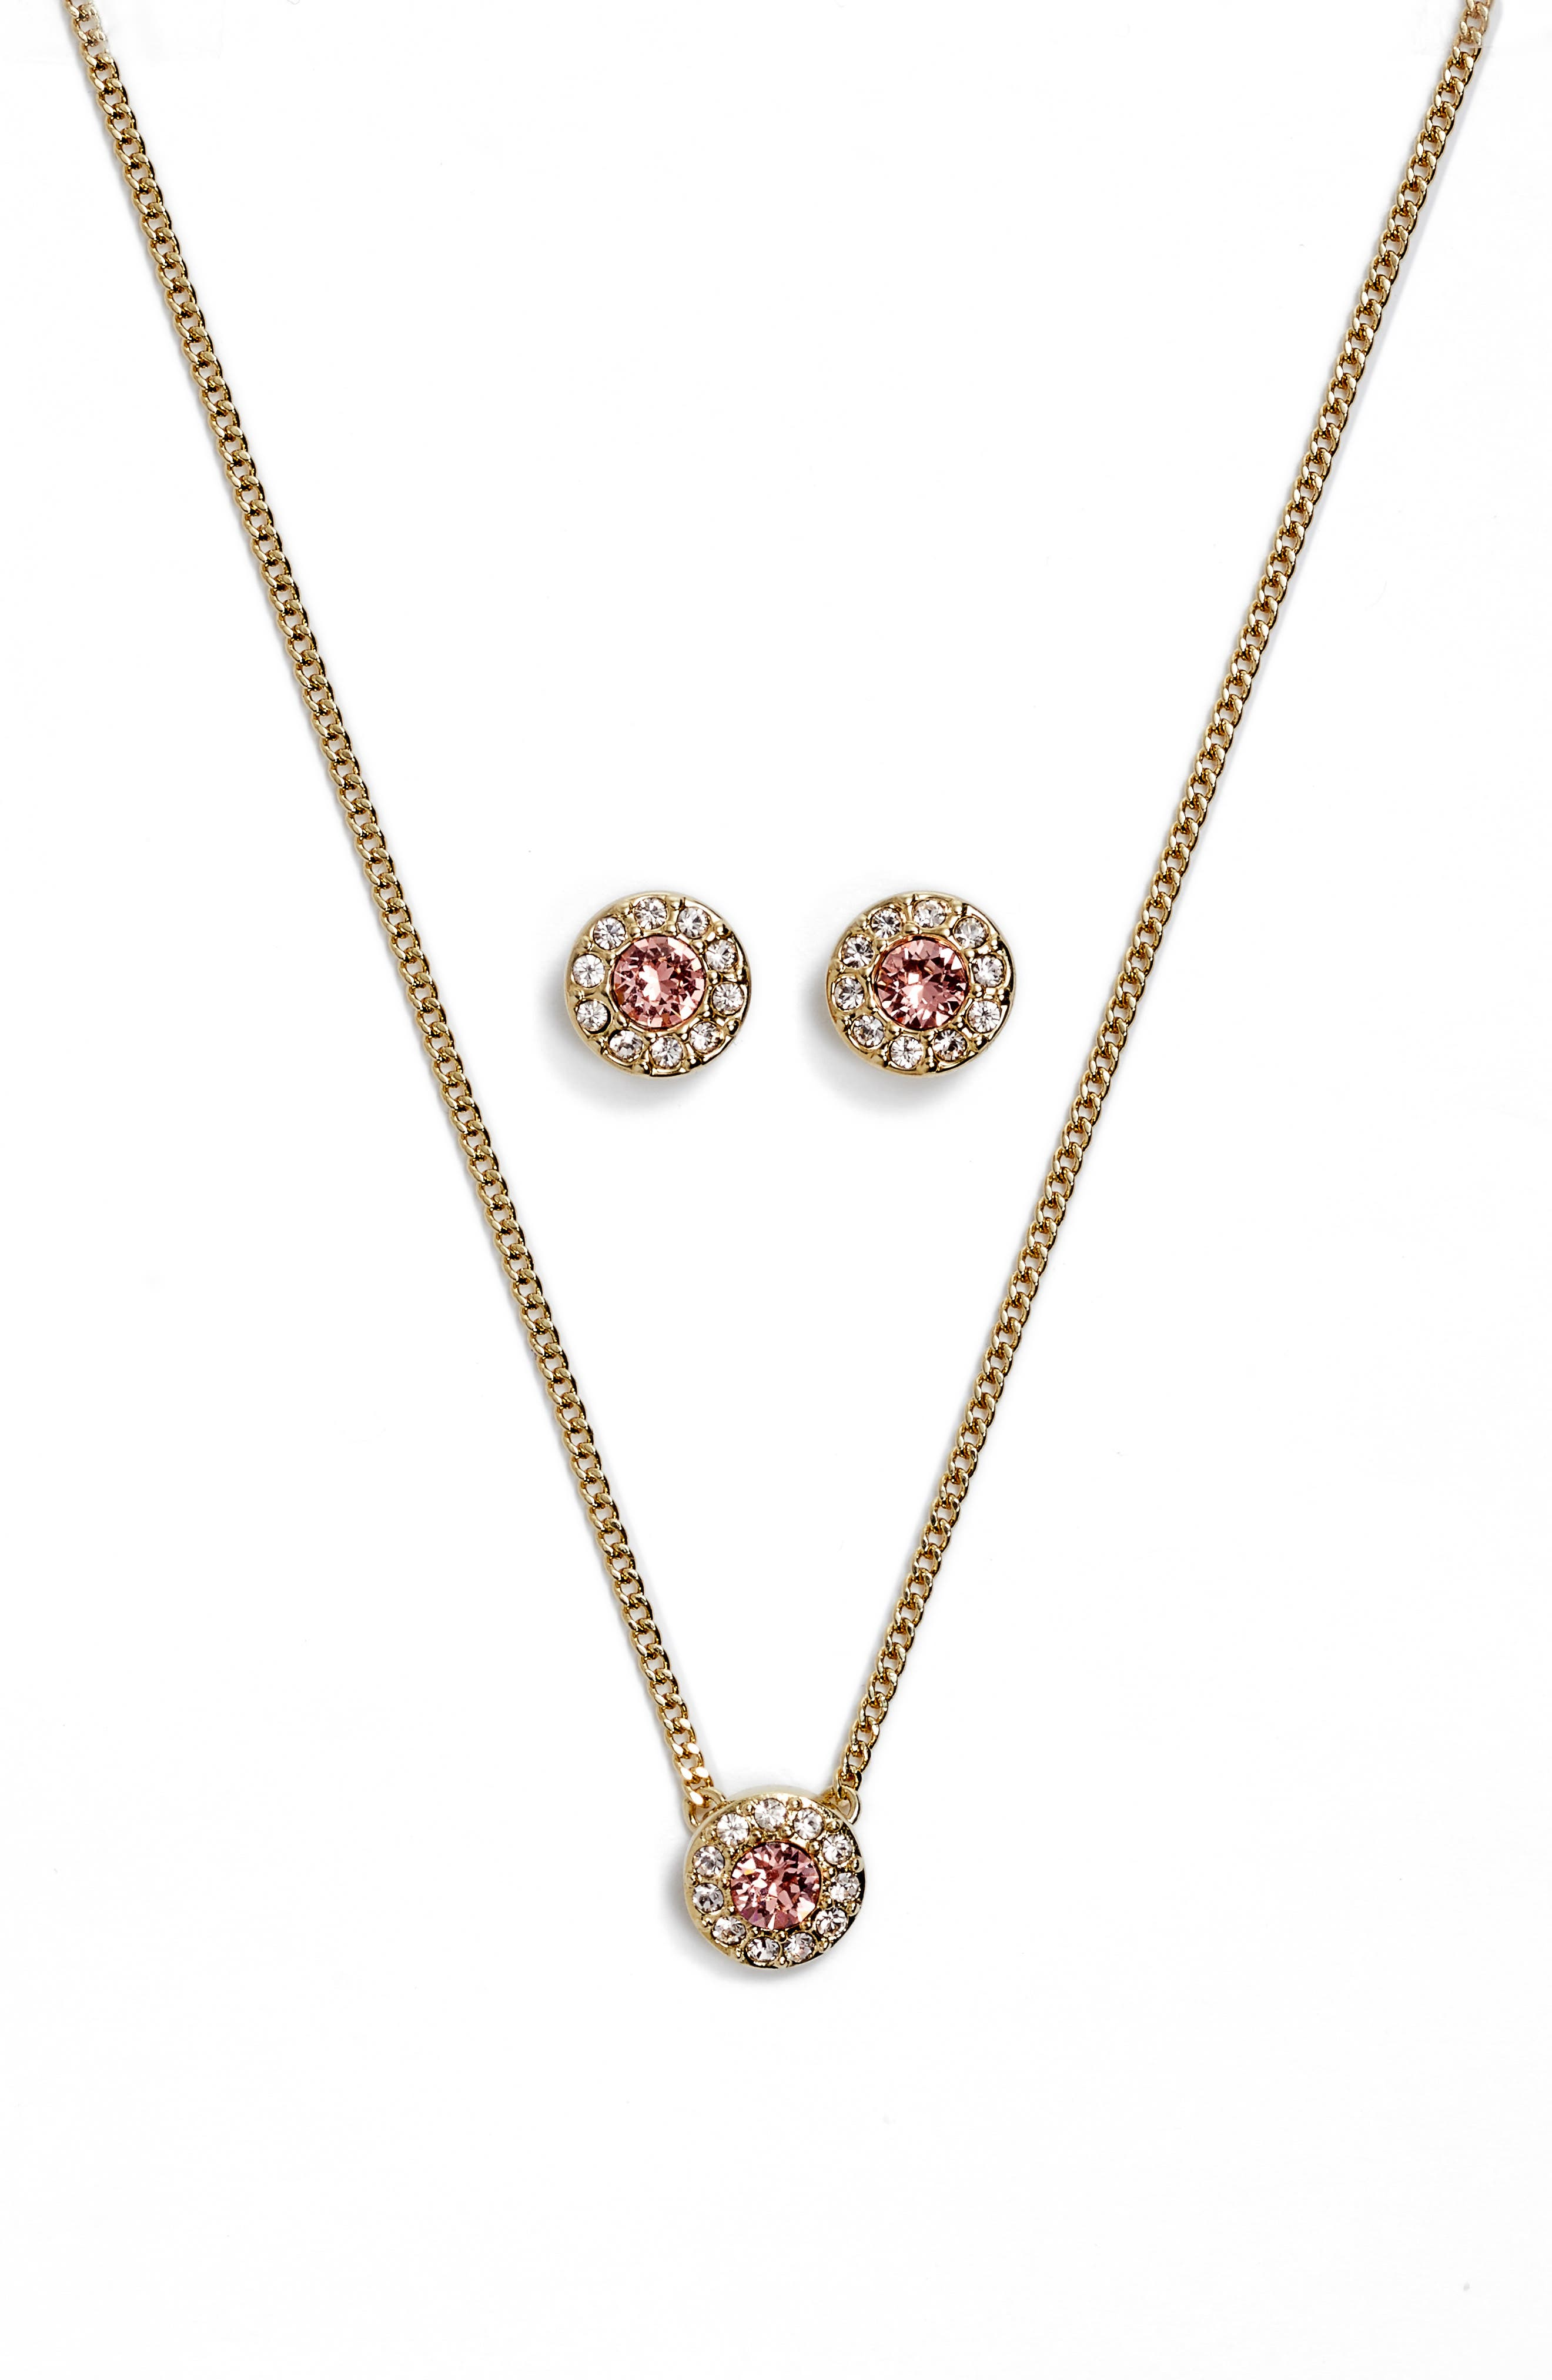 Alternate Image 1 Selected - Givenchy Pavé Necklace & Earrings Set